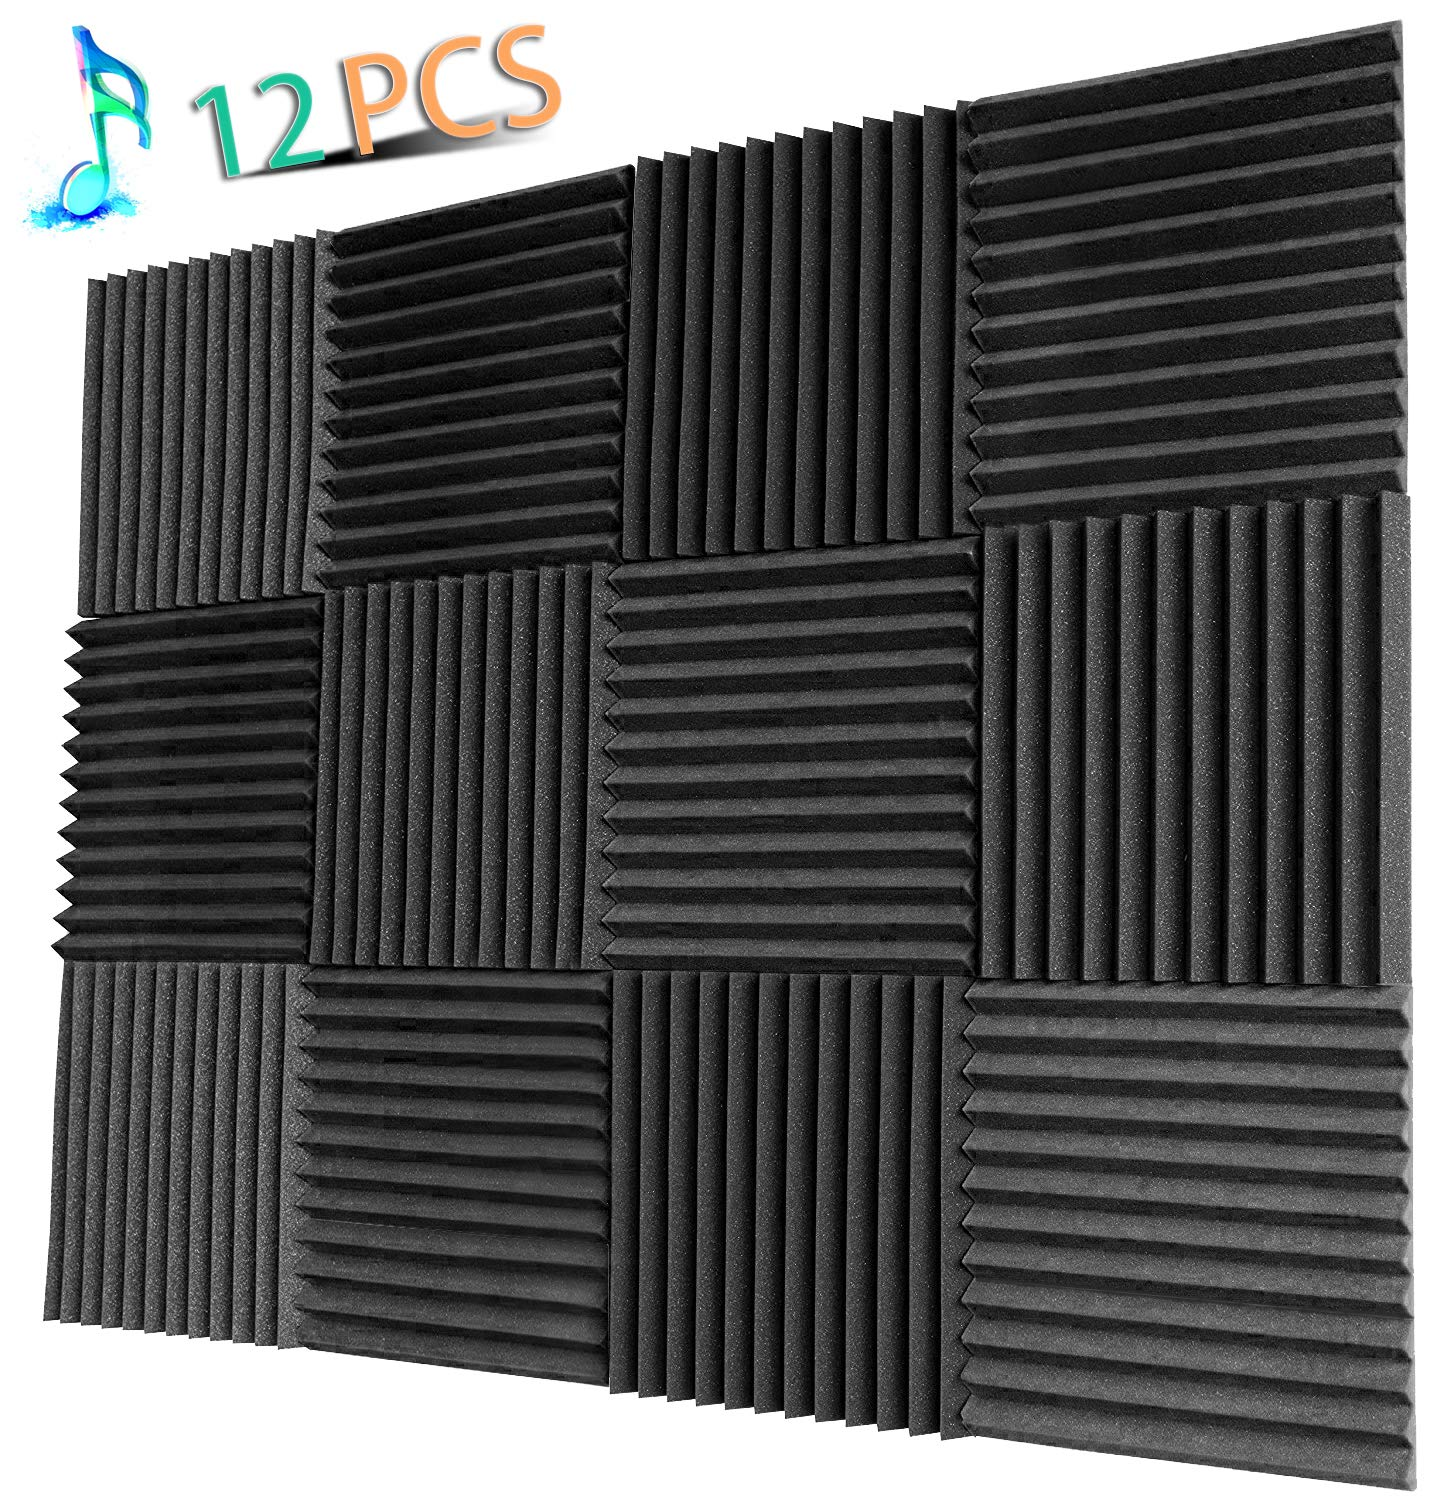 YWSHUF Acoustic Panels Studio Foam Soundproofing Foam Acoustical Treatments Foam 12 pack-12''12''1''(Charcoal-12 Pcs) by YWSHUF